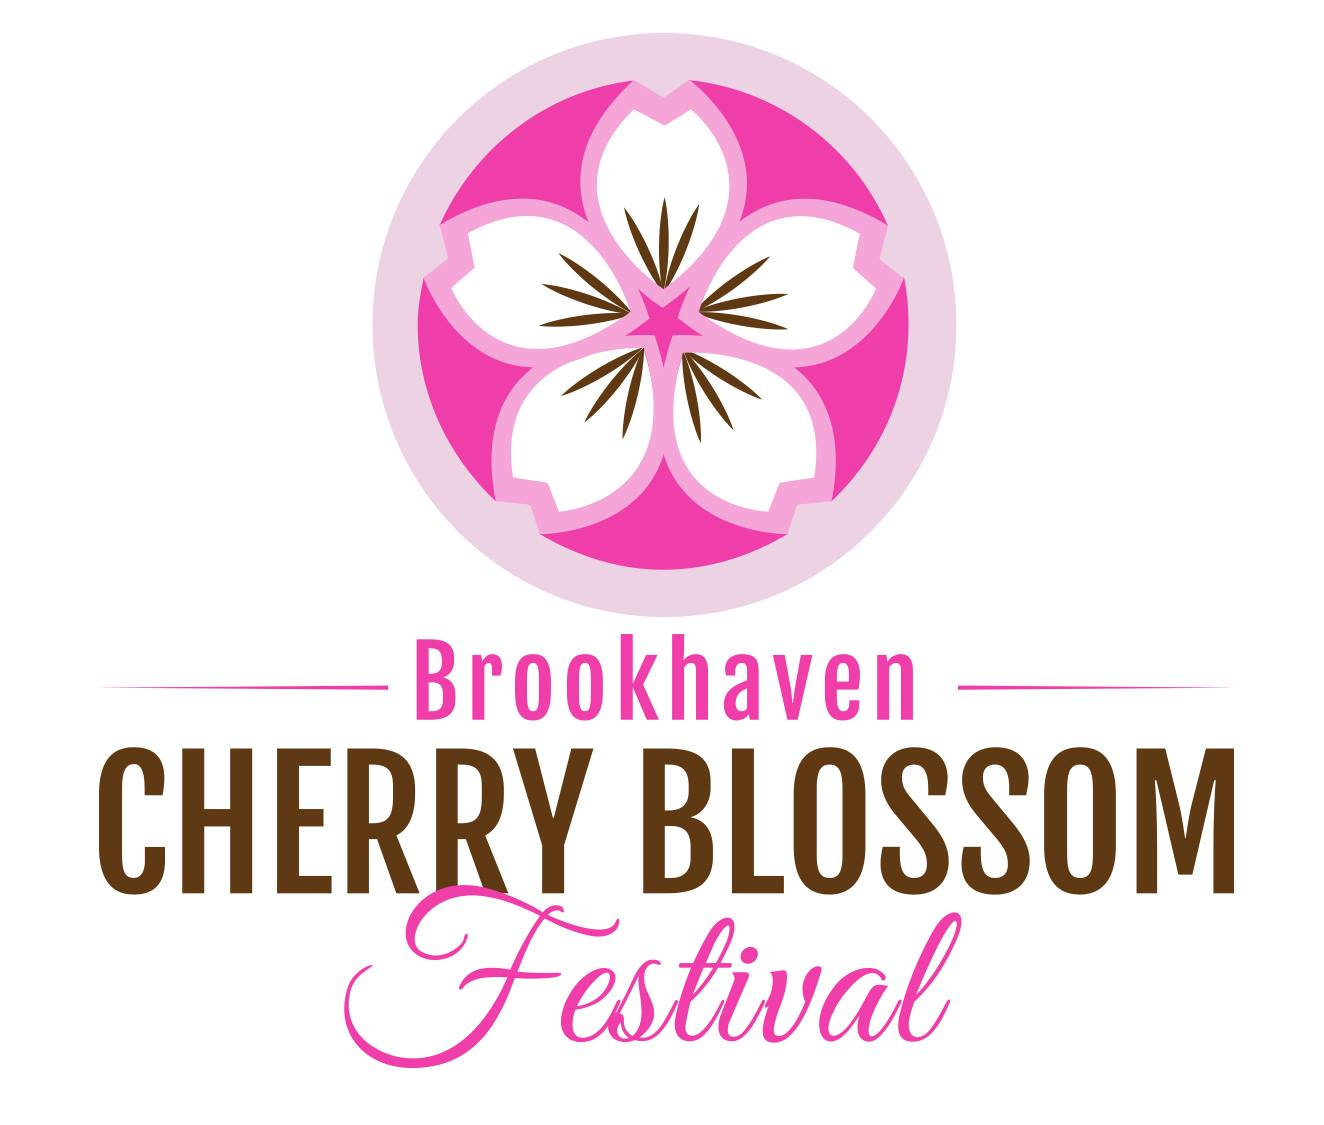 $200K Cherry Blossom Festival marketing was done without bid